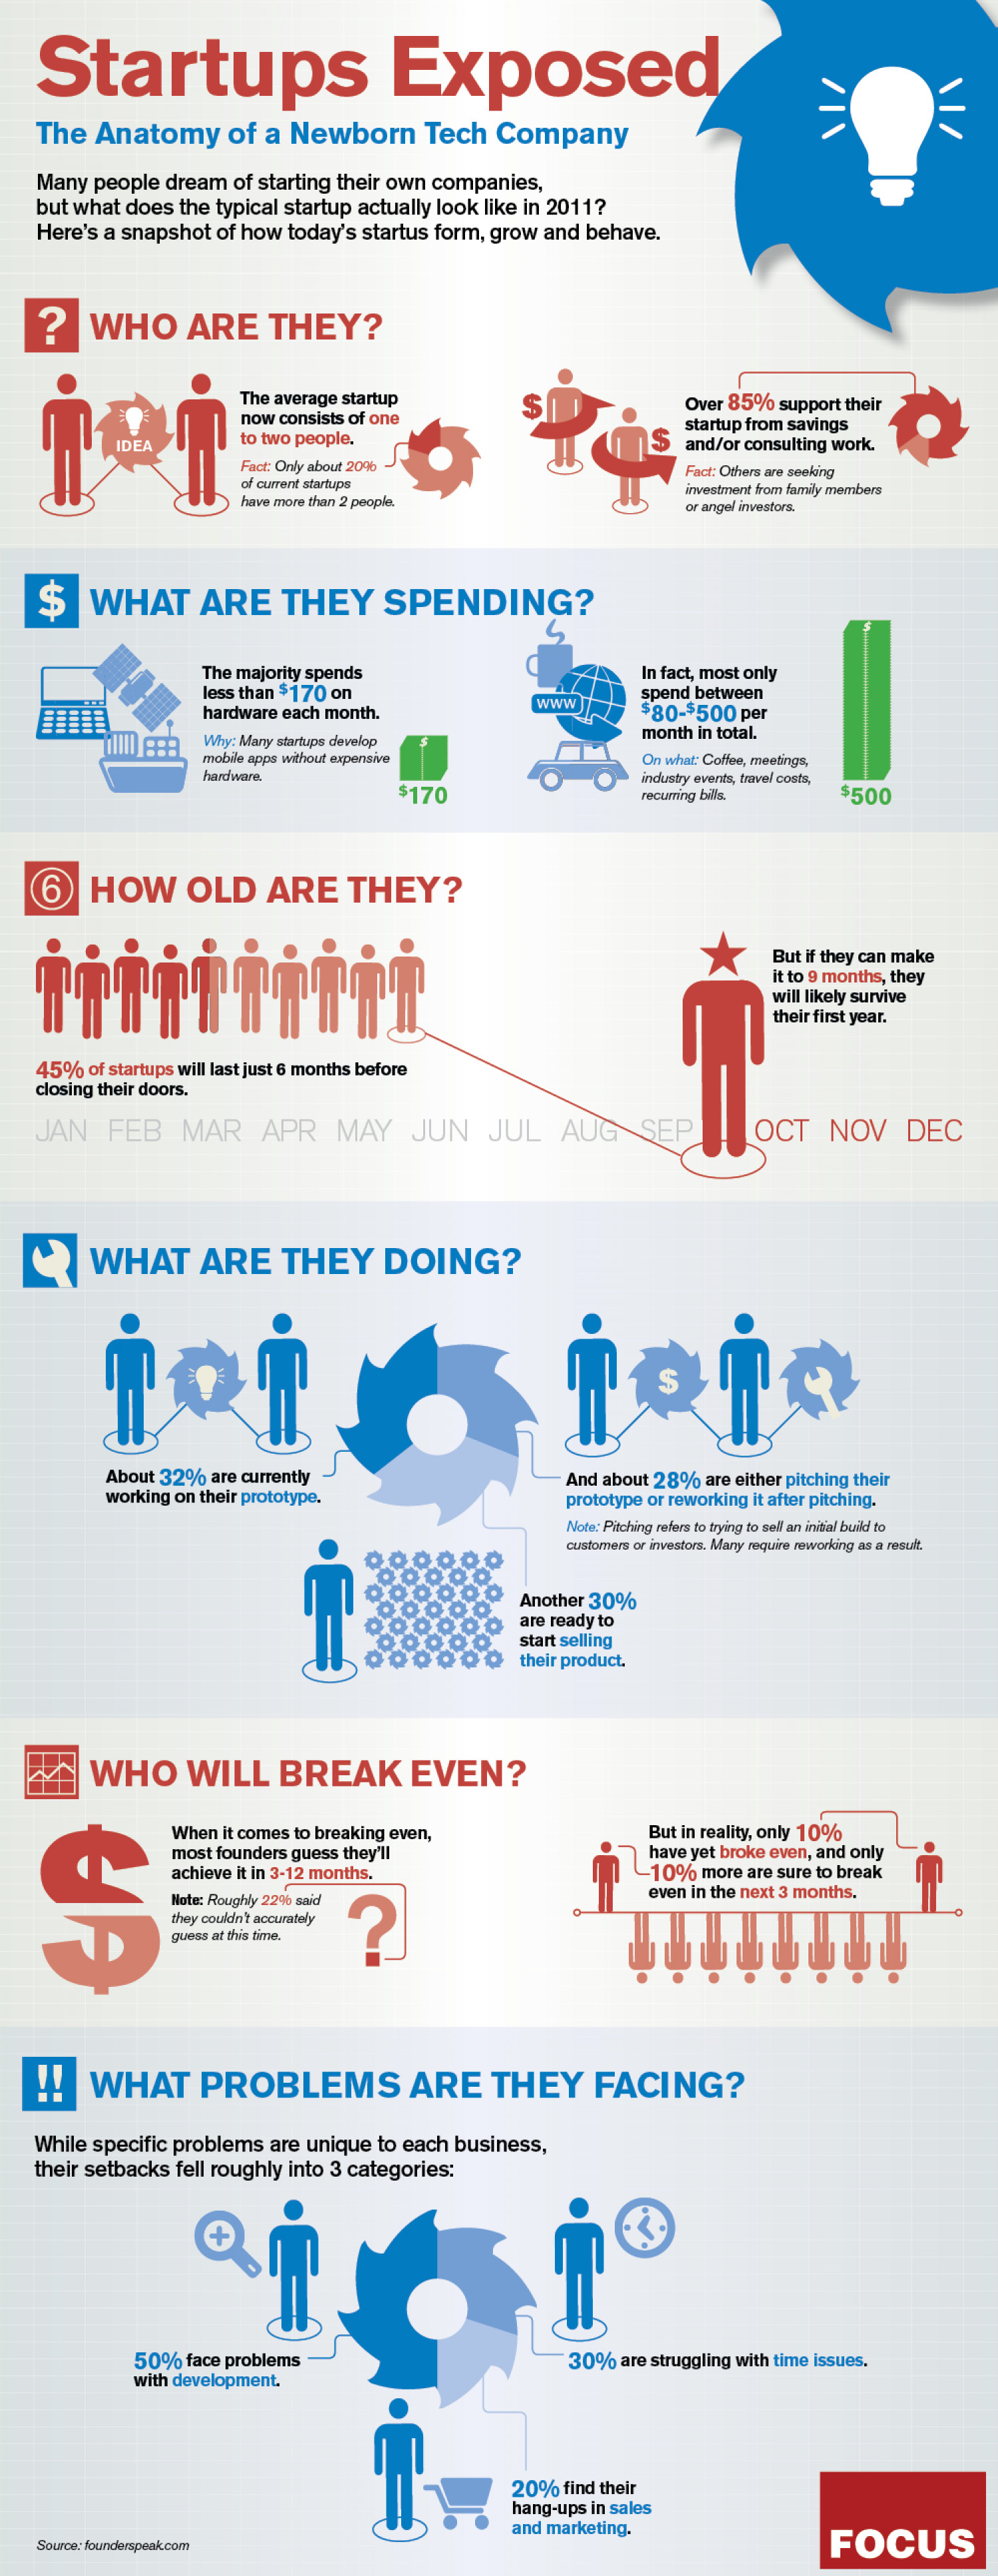 Start-Ups Exposed Infographic